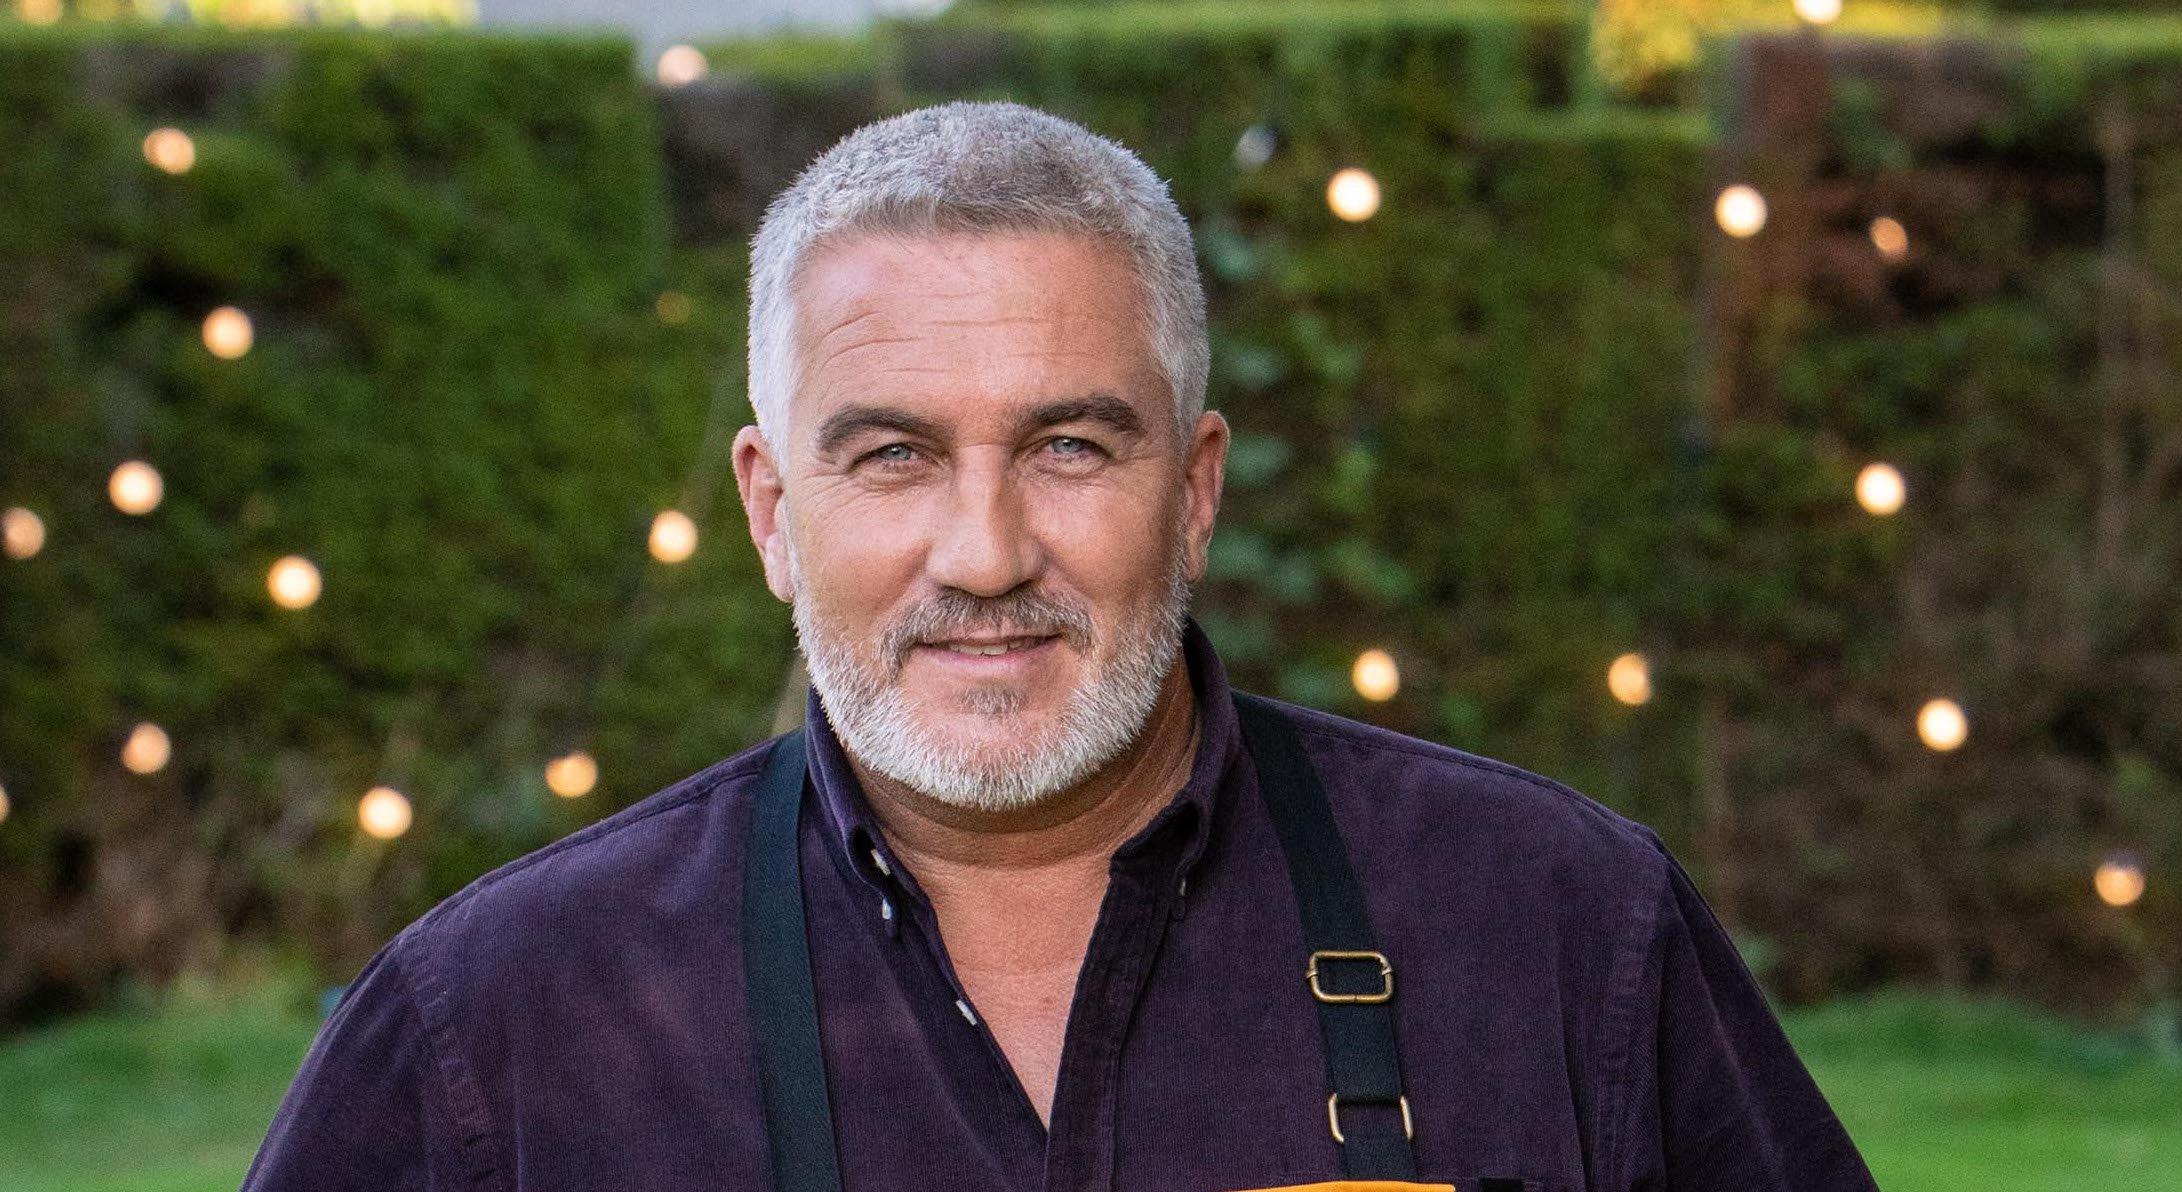 Great British Bake Off's Paul Hollywood gets his products shelved by Tesco